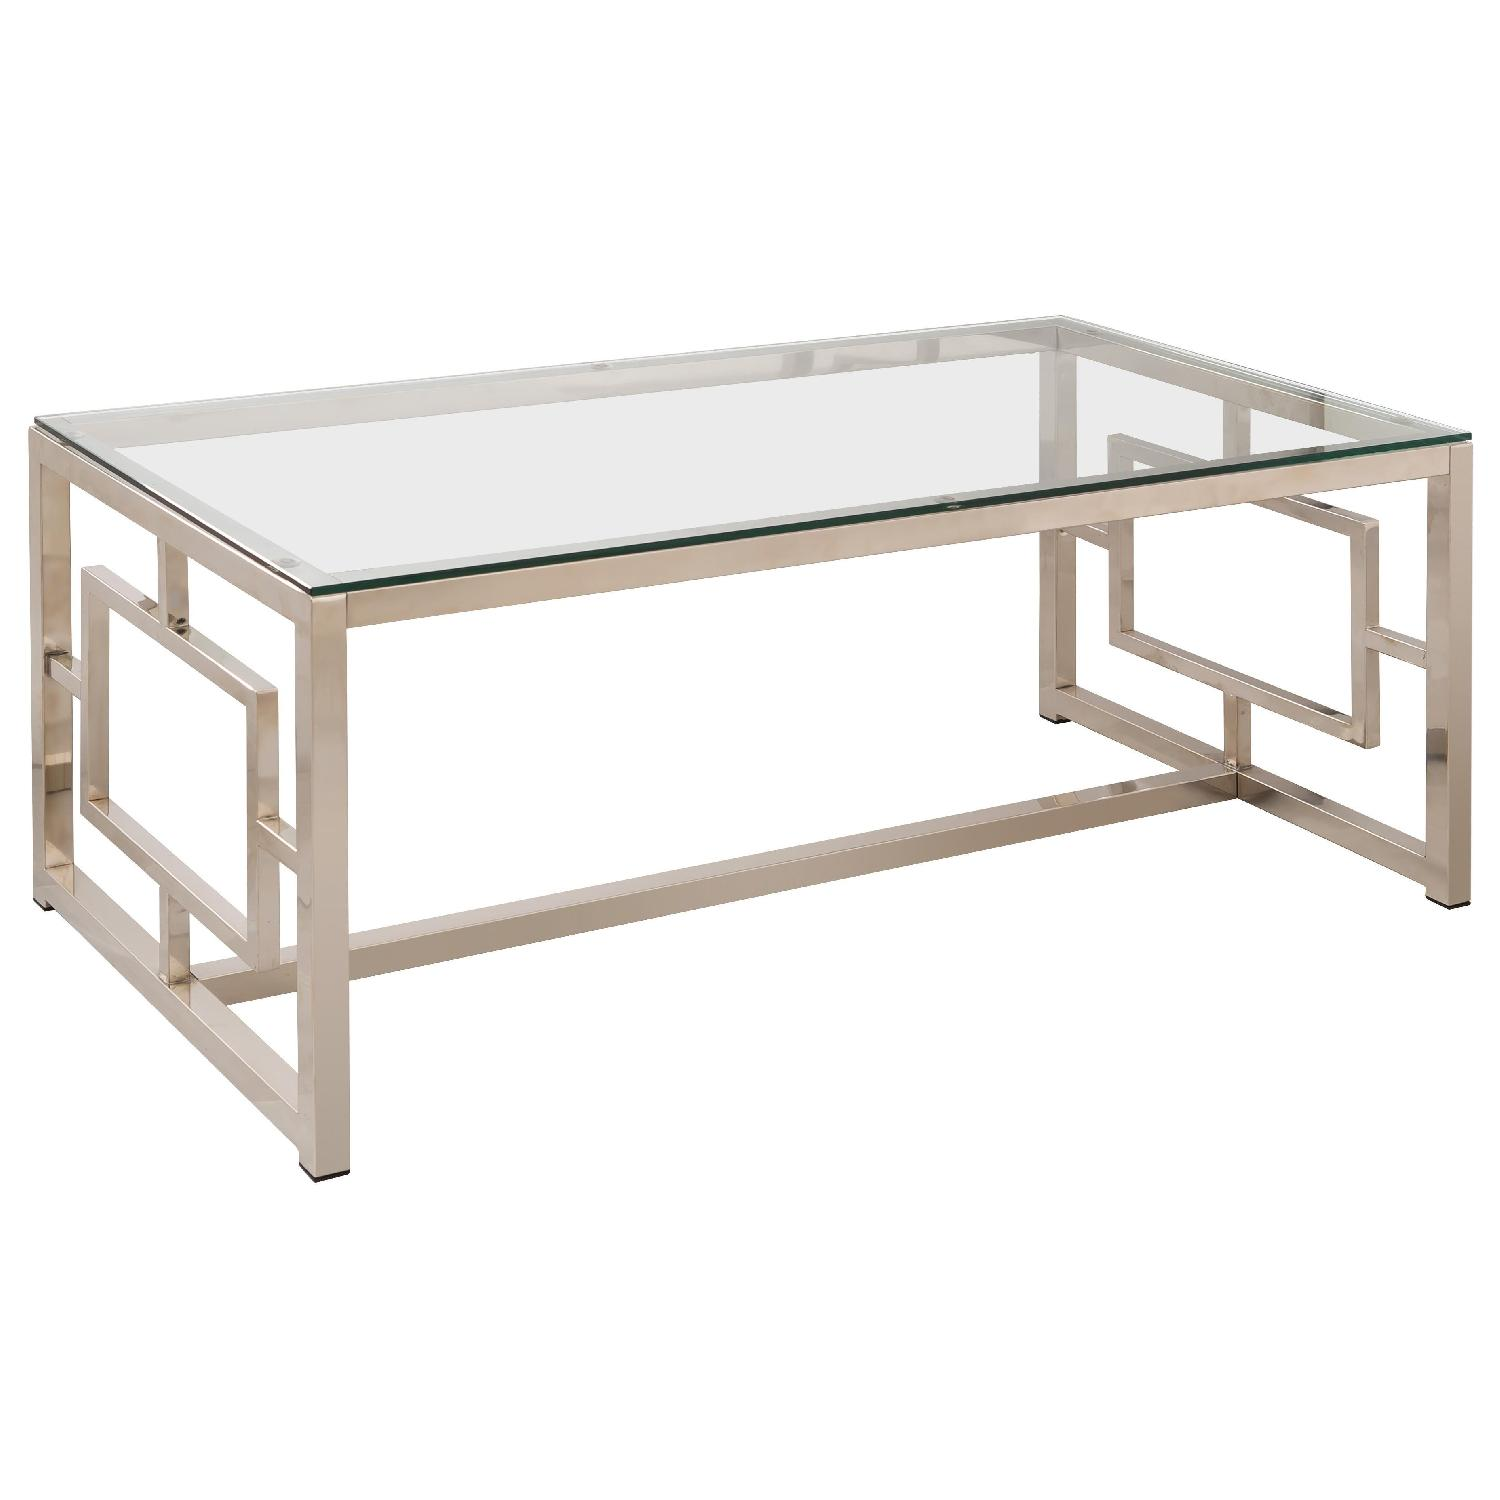 Contemporary Glass Table Top Metal Coffee Table w/ Geometric Motif Nickel Finished Base